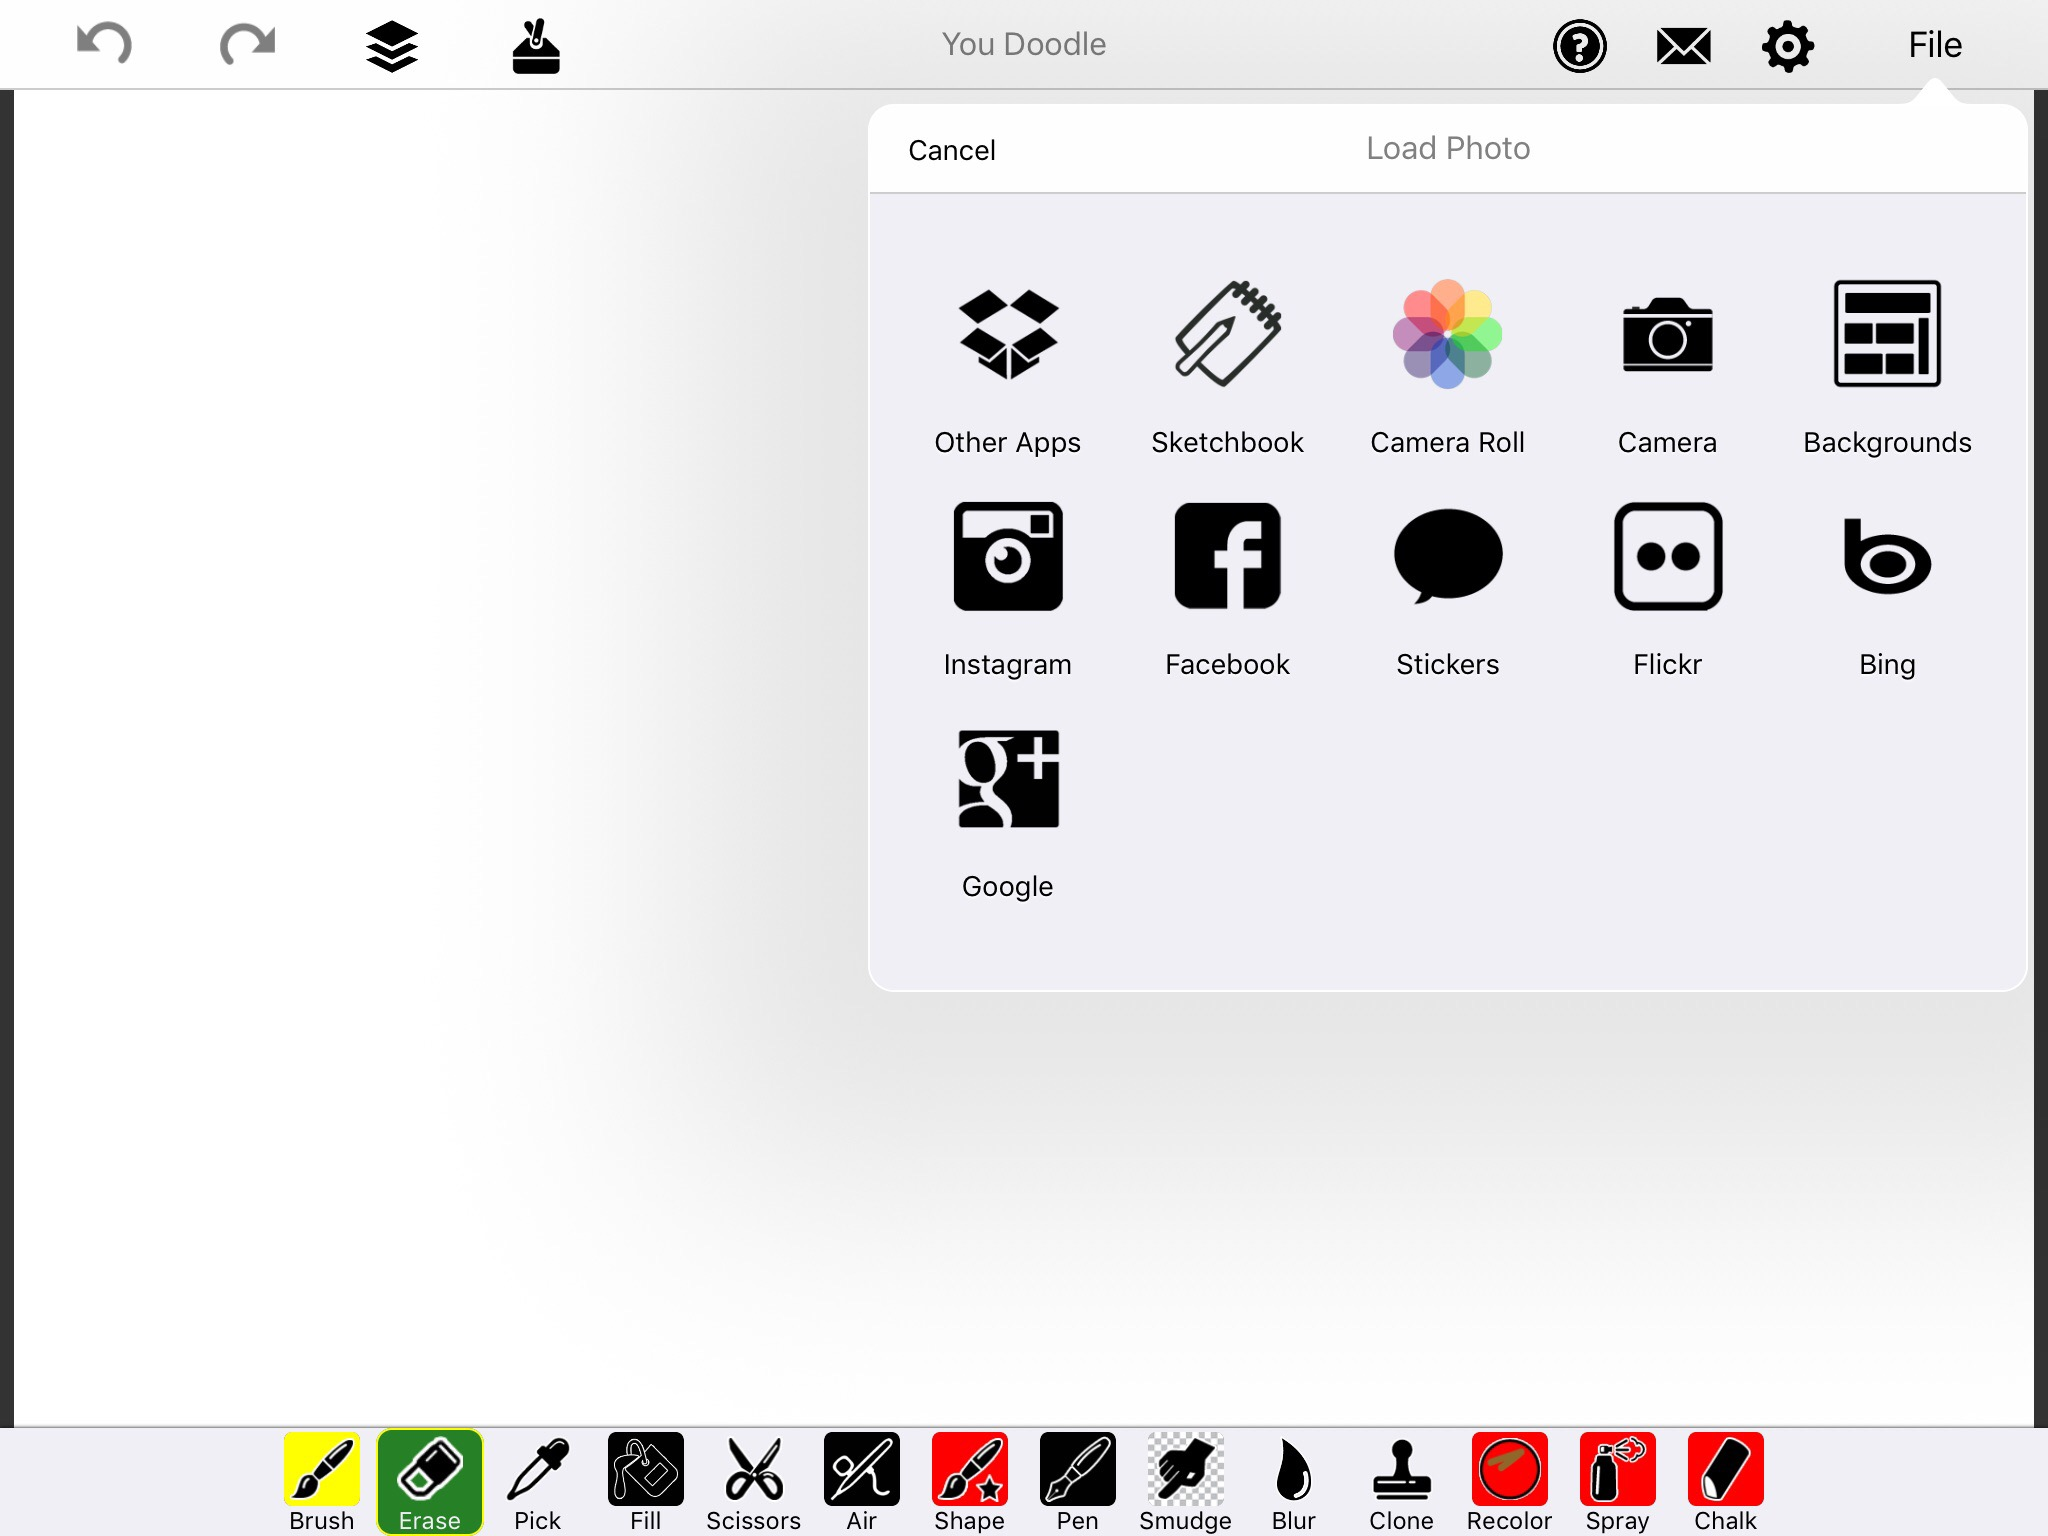 Screenshot of You Doodle with popup menu and Camera Roll option.